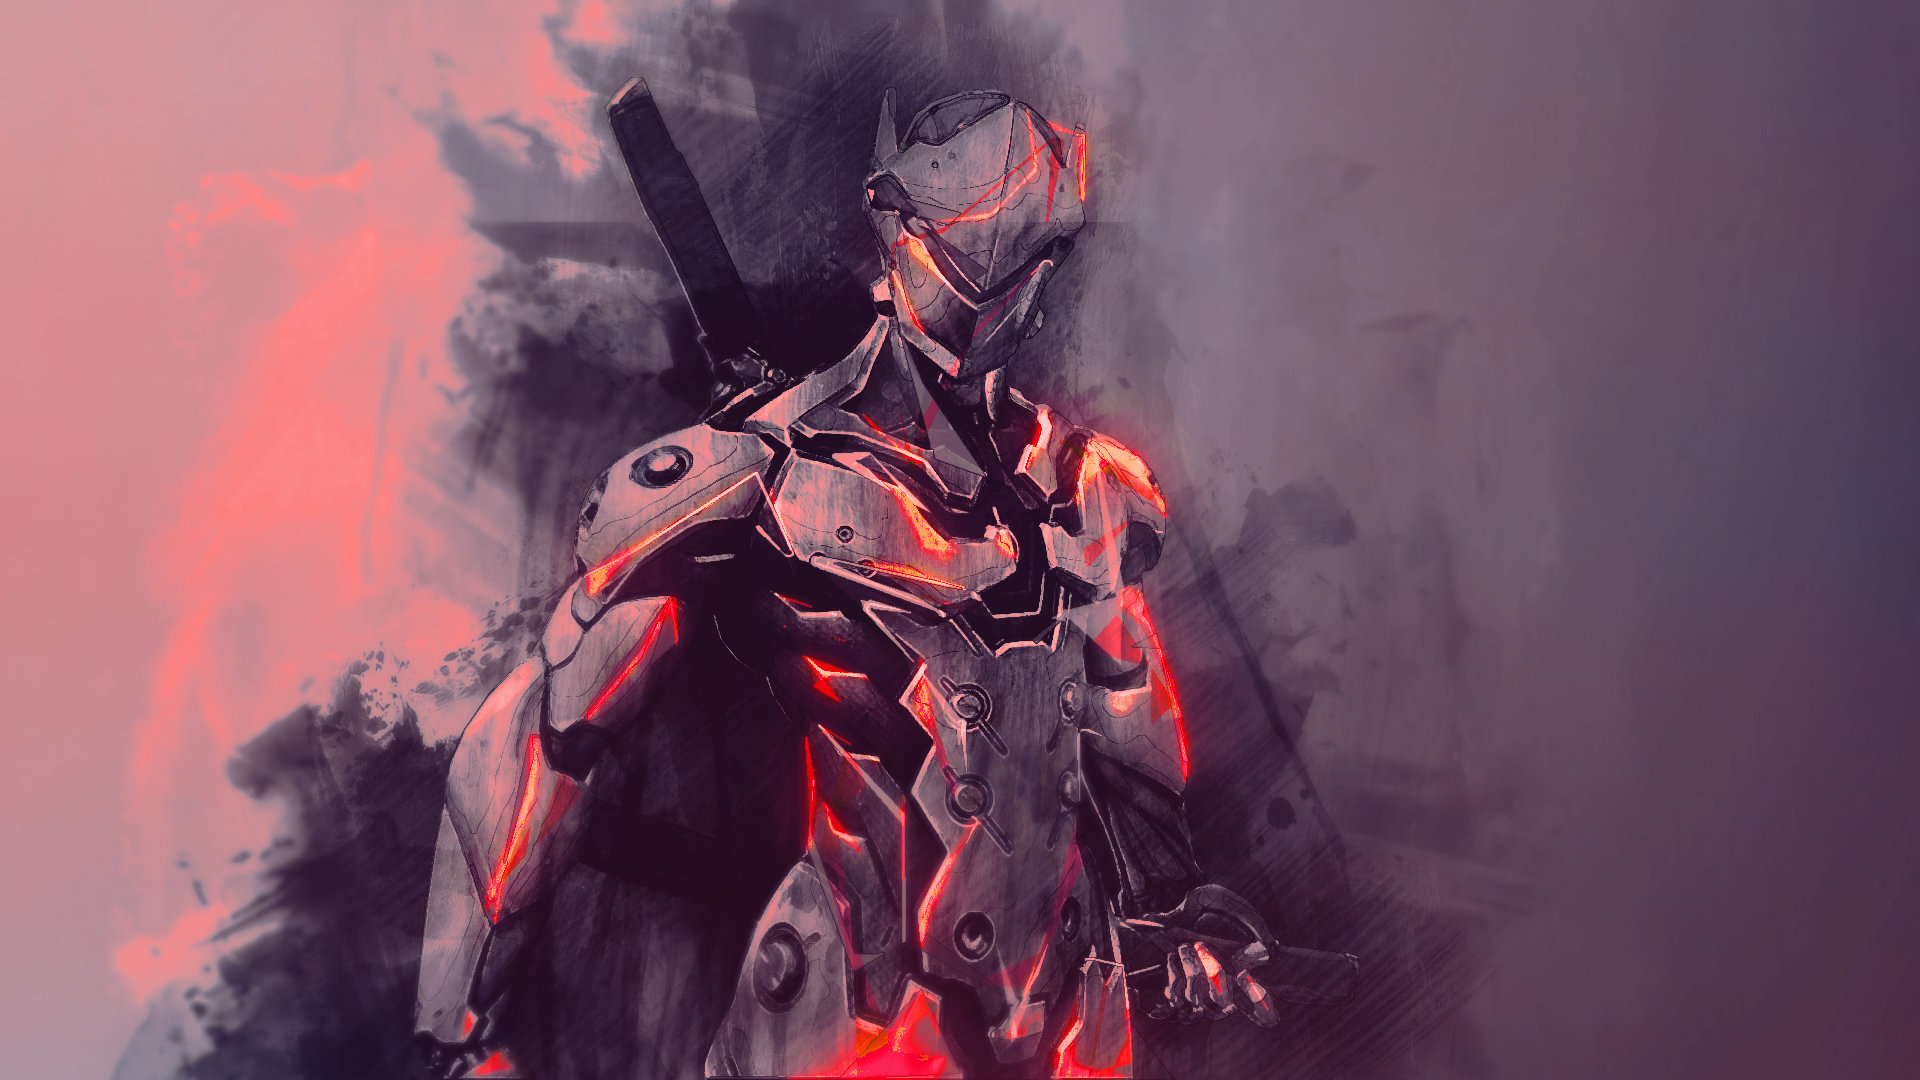 High Resolution Genji Overwatch Hd 1920x1080 Wallpaper Id